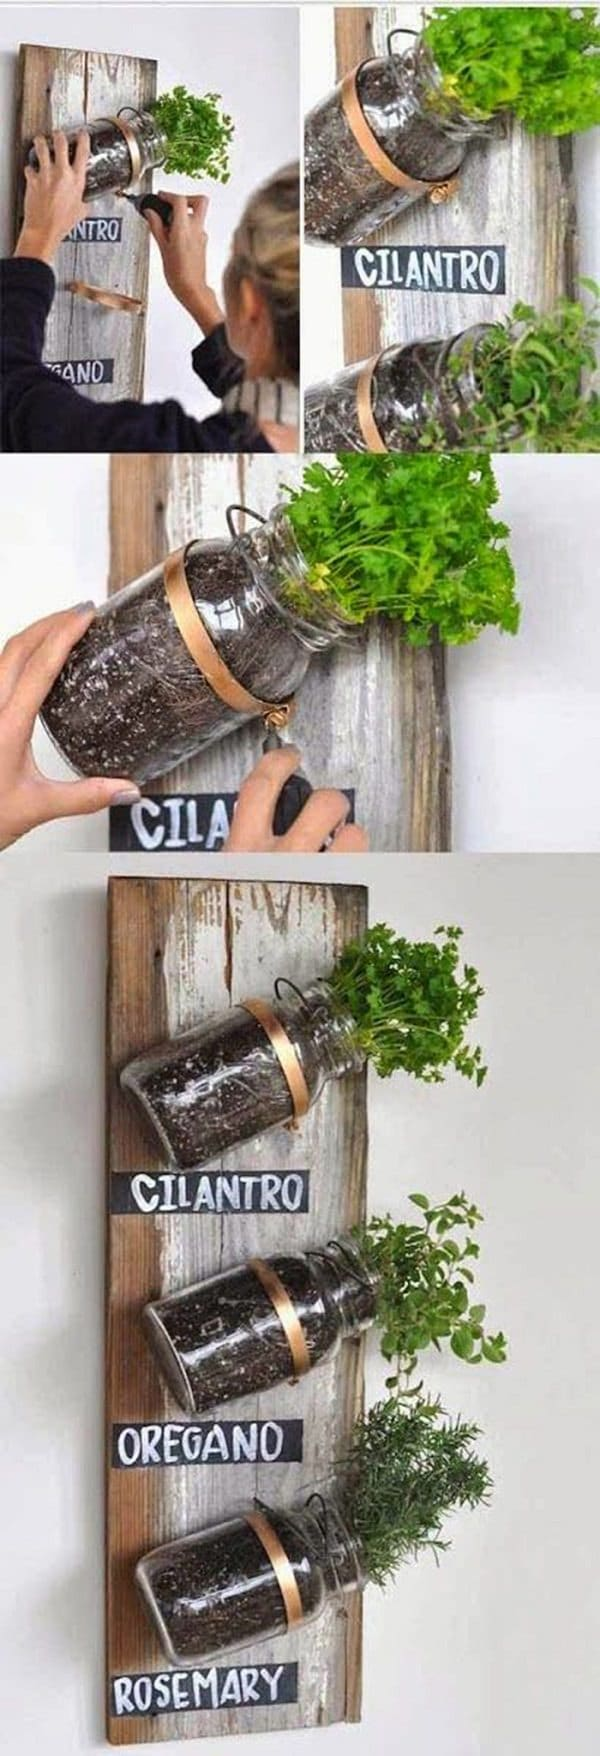 16 Genius Vertical Gardening Ideas For Small Gardens | Balcony ...